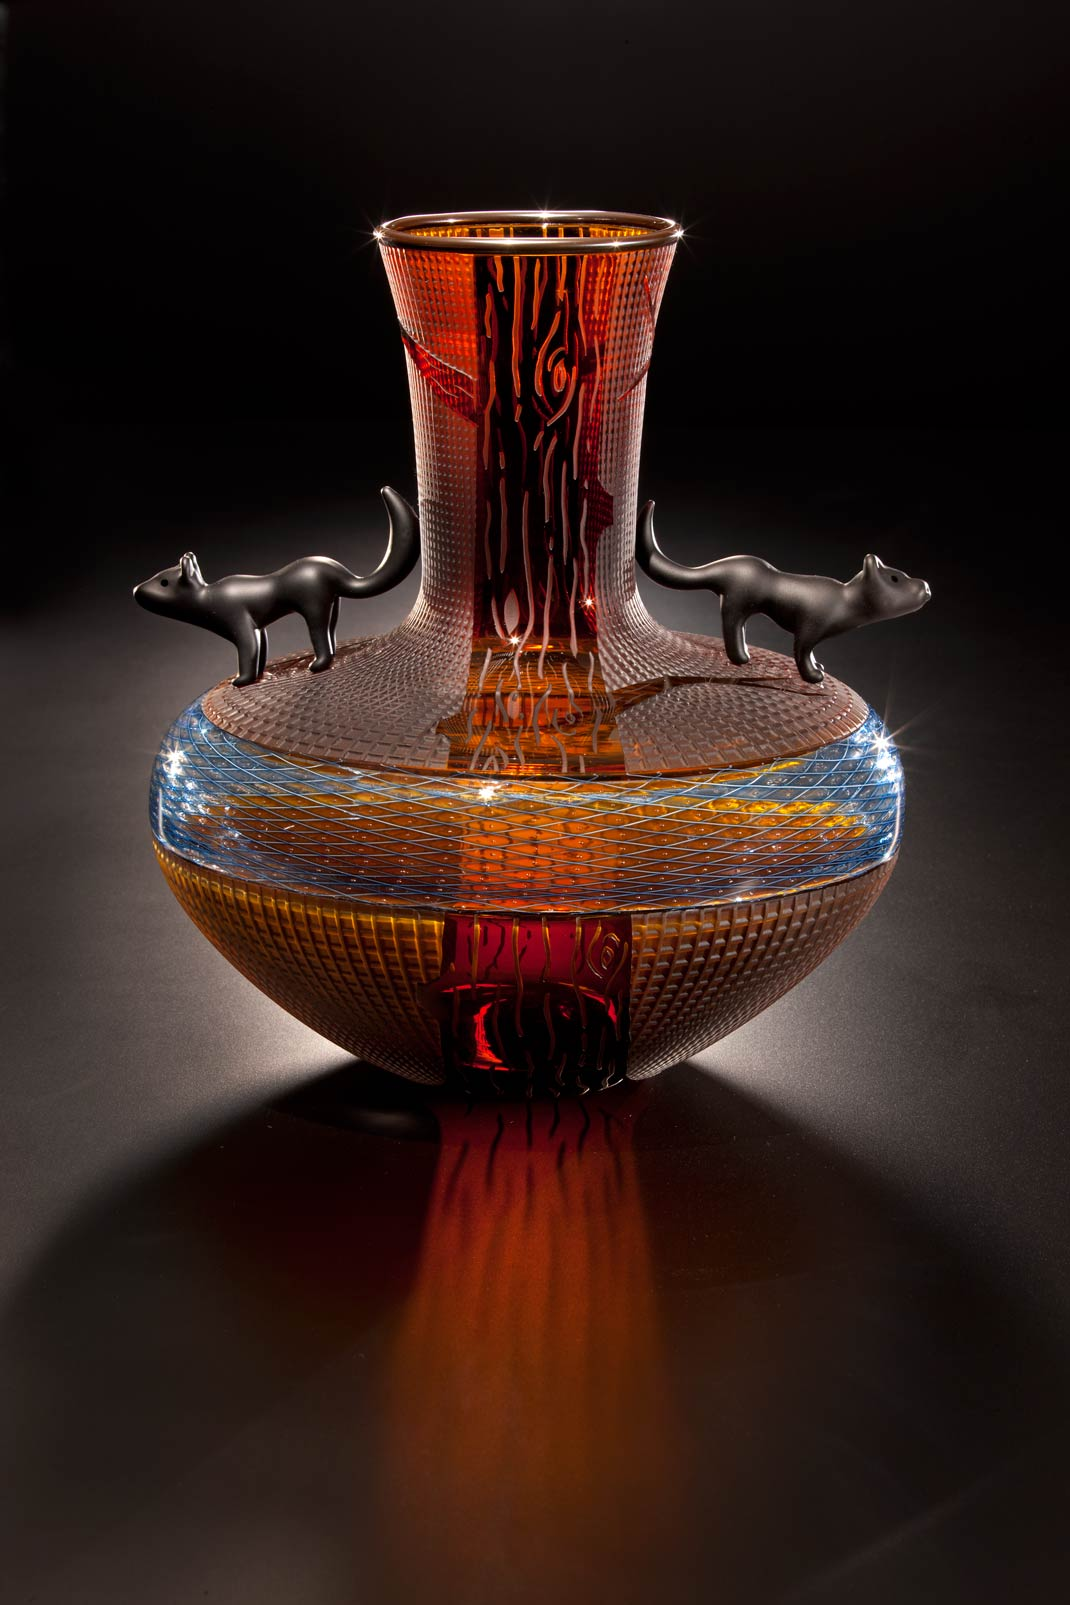 Glass Art by Singletary and Marioni